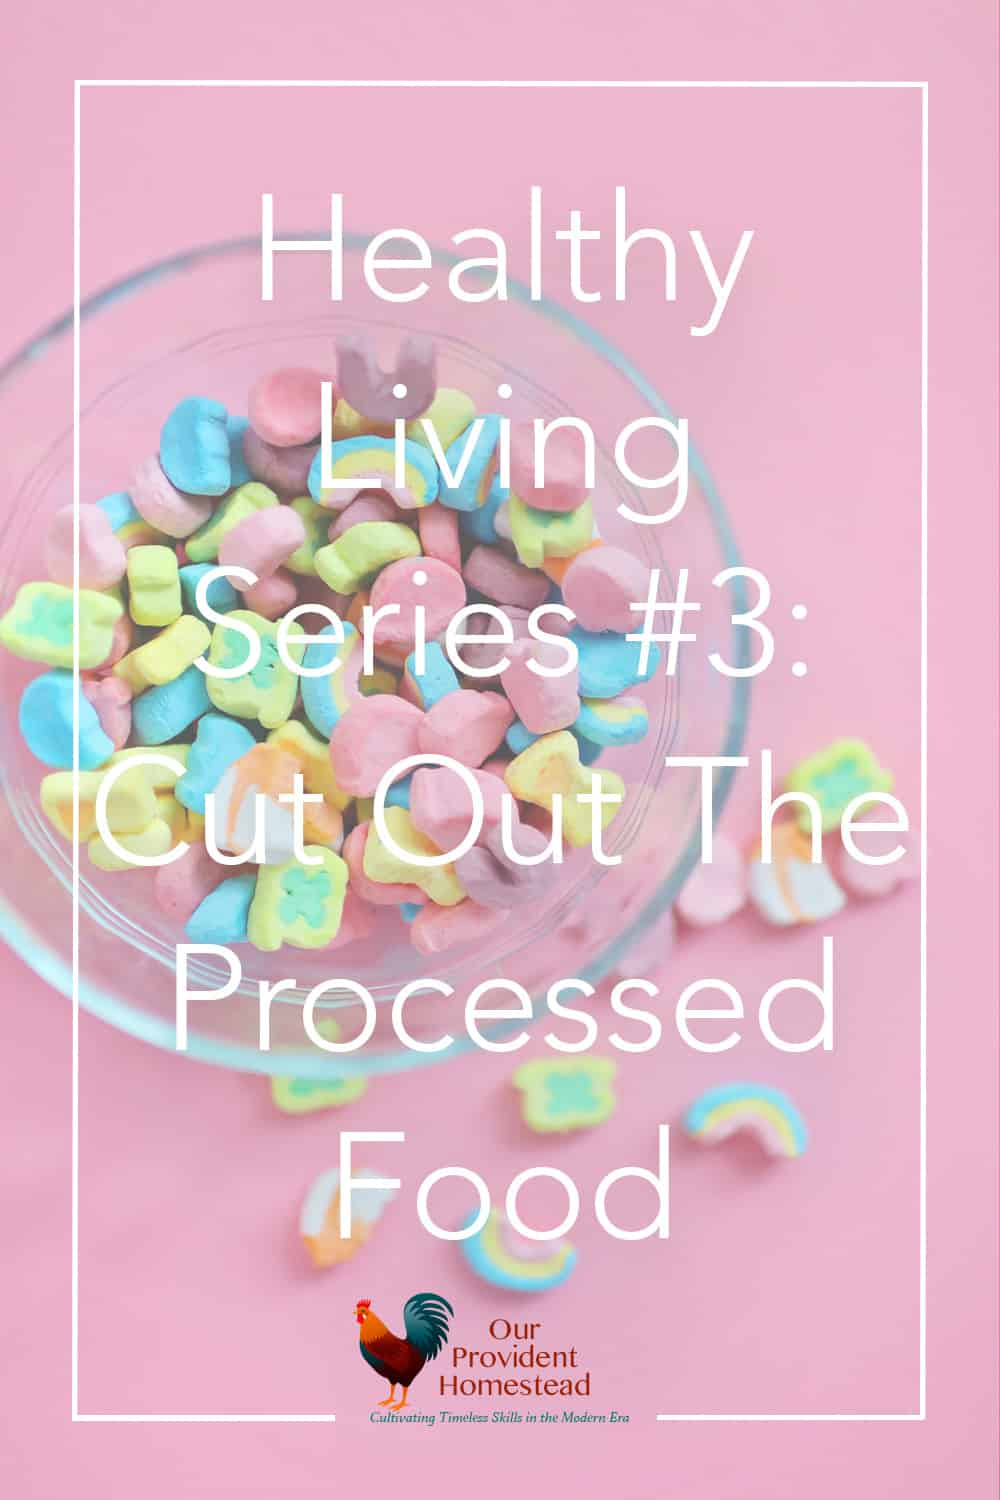 Do you eat healthy? In this third part of the Healthy Living Series, we discuss processed food and how we can cut it out of our diet and eat healthier. #healthyliving #realfood #health